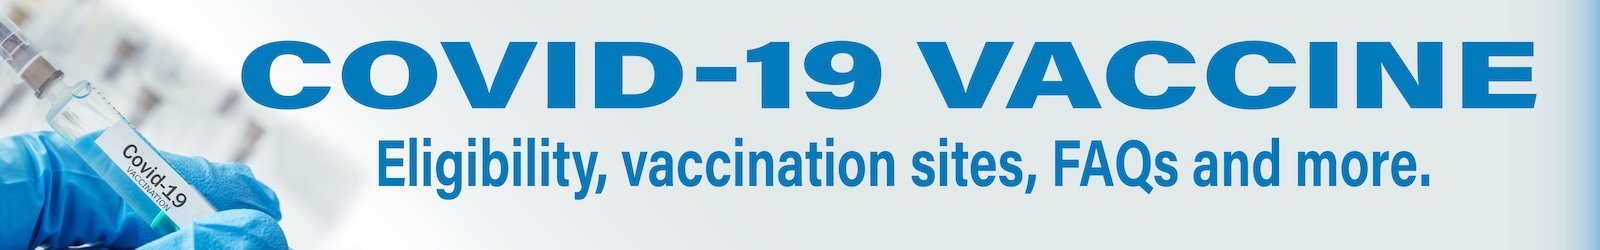 COVID-19 Vaccination Information & Resources 2